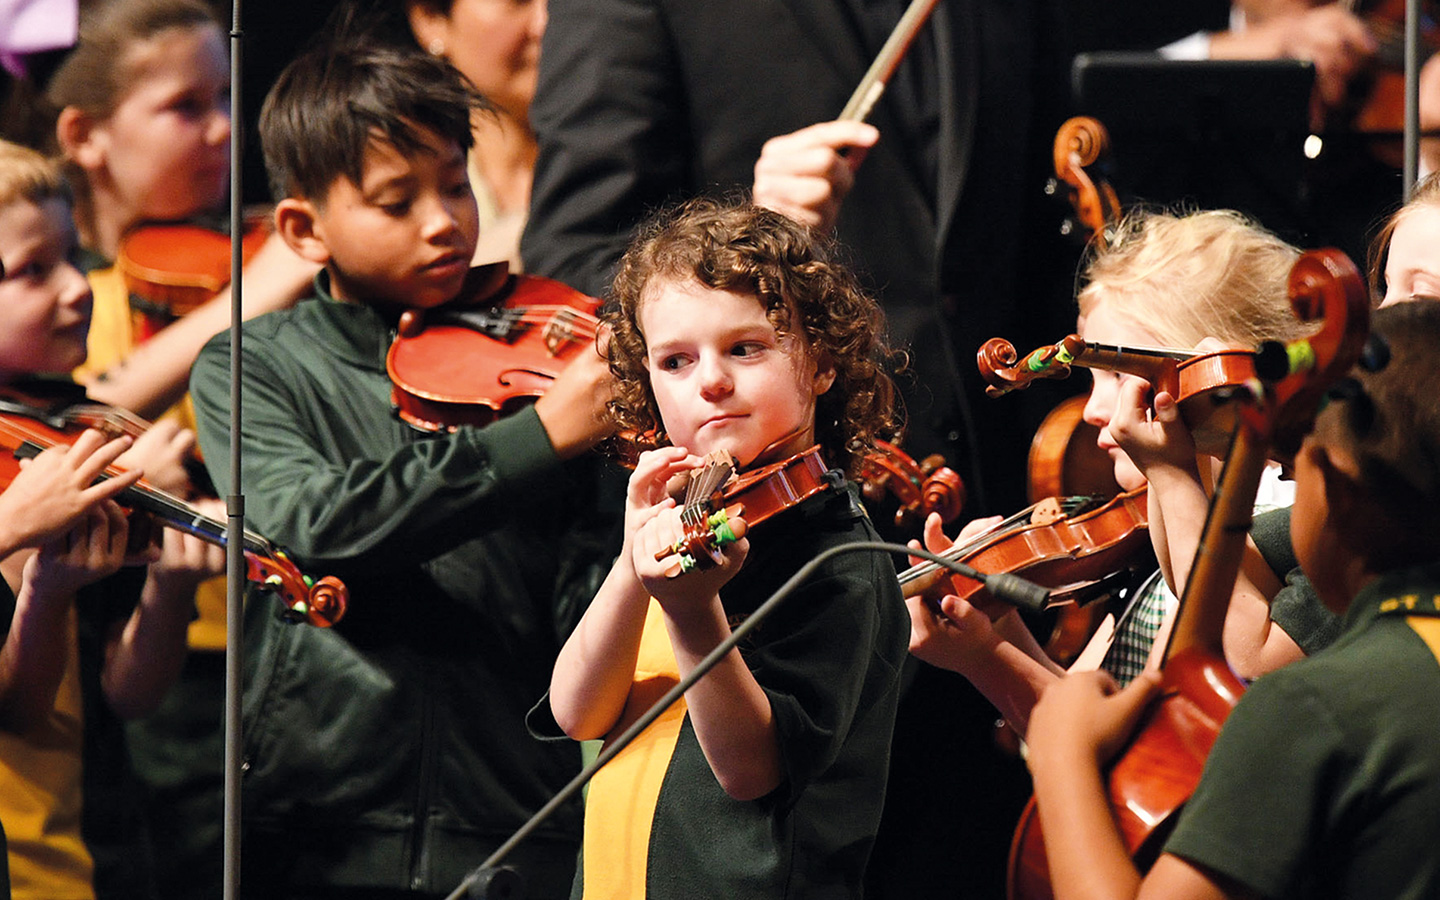 Child from St Marys school learning to play the violin.